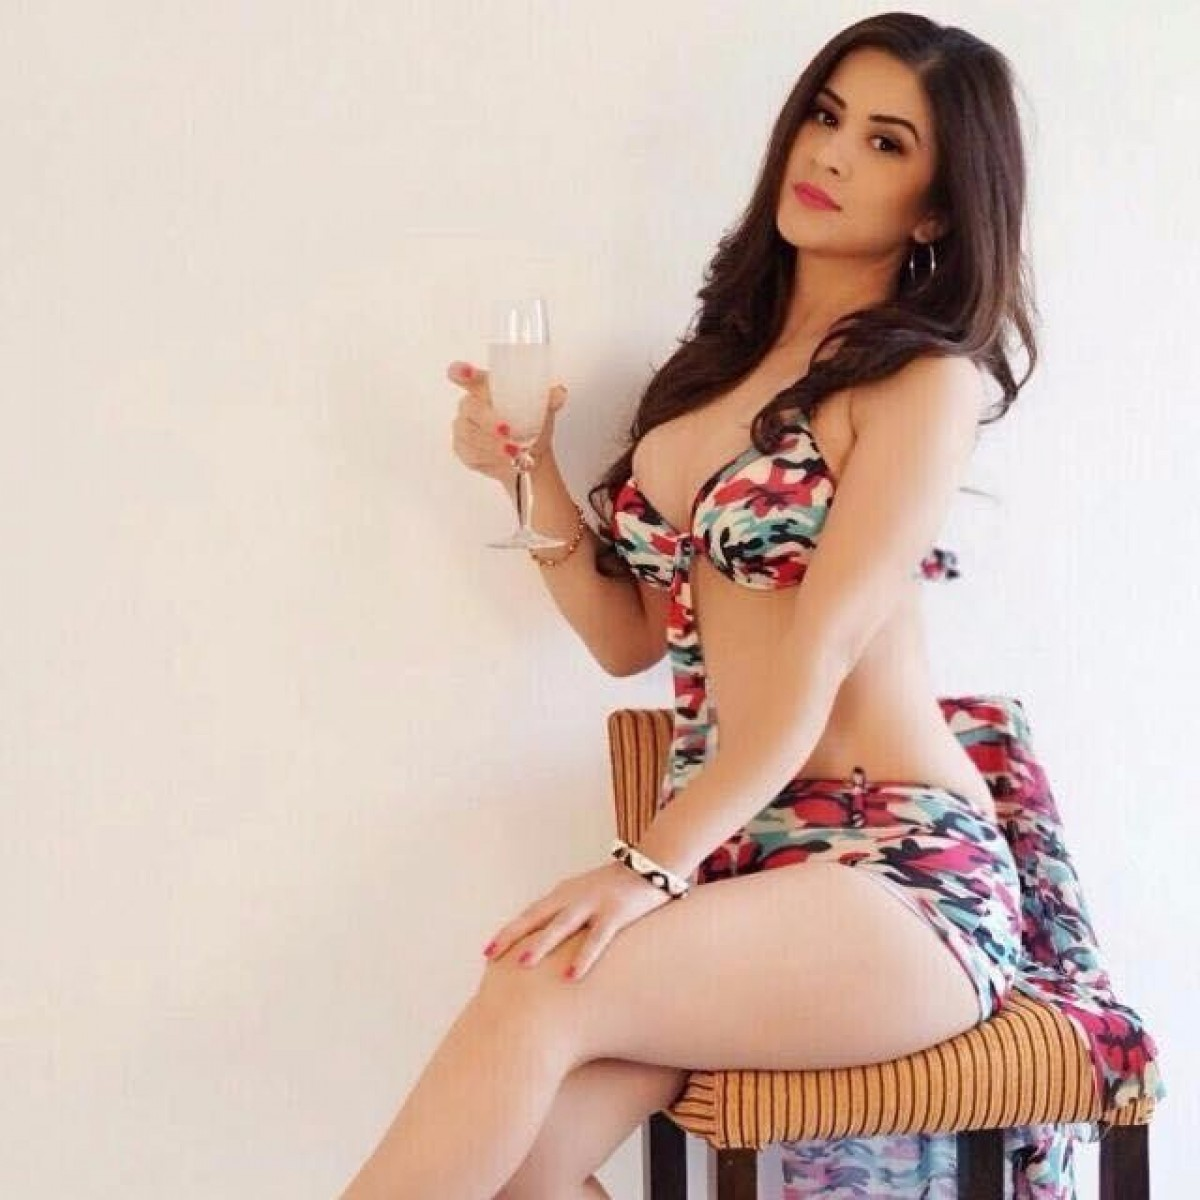 hotel-trident-nariman-point-sexy-call-girls-09820294527-